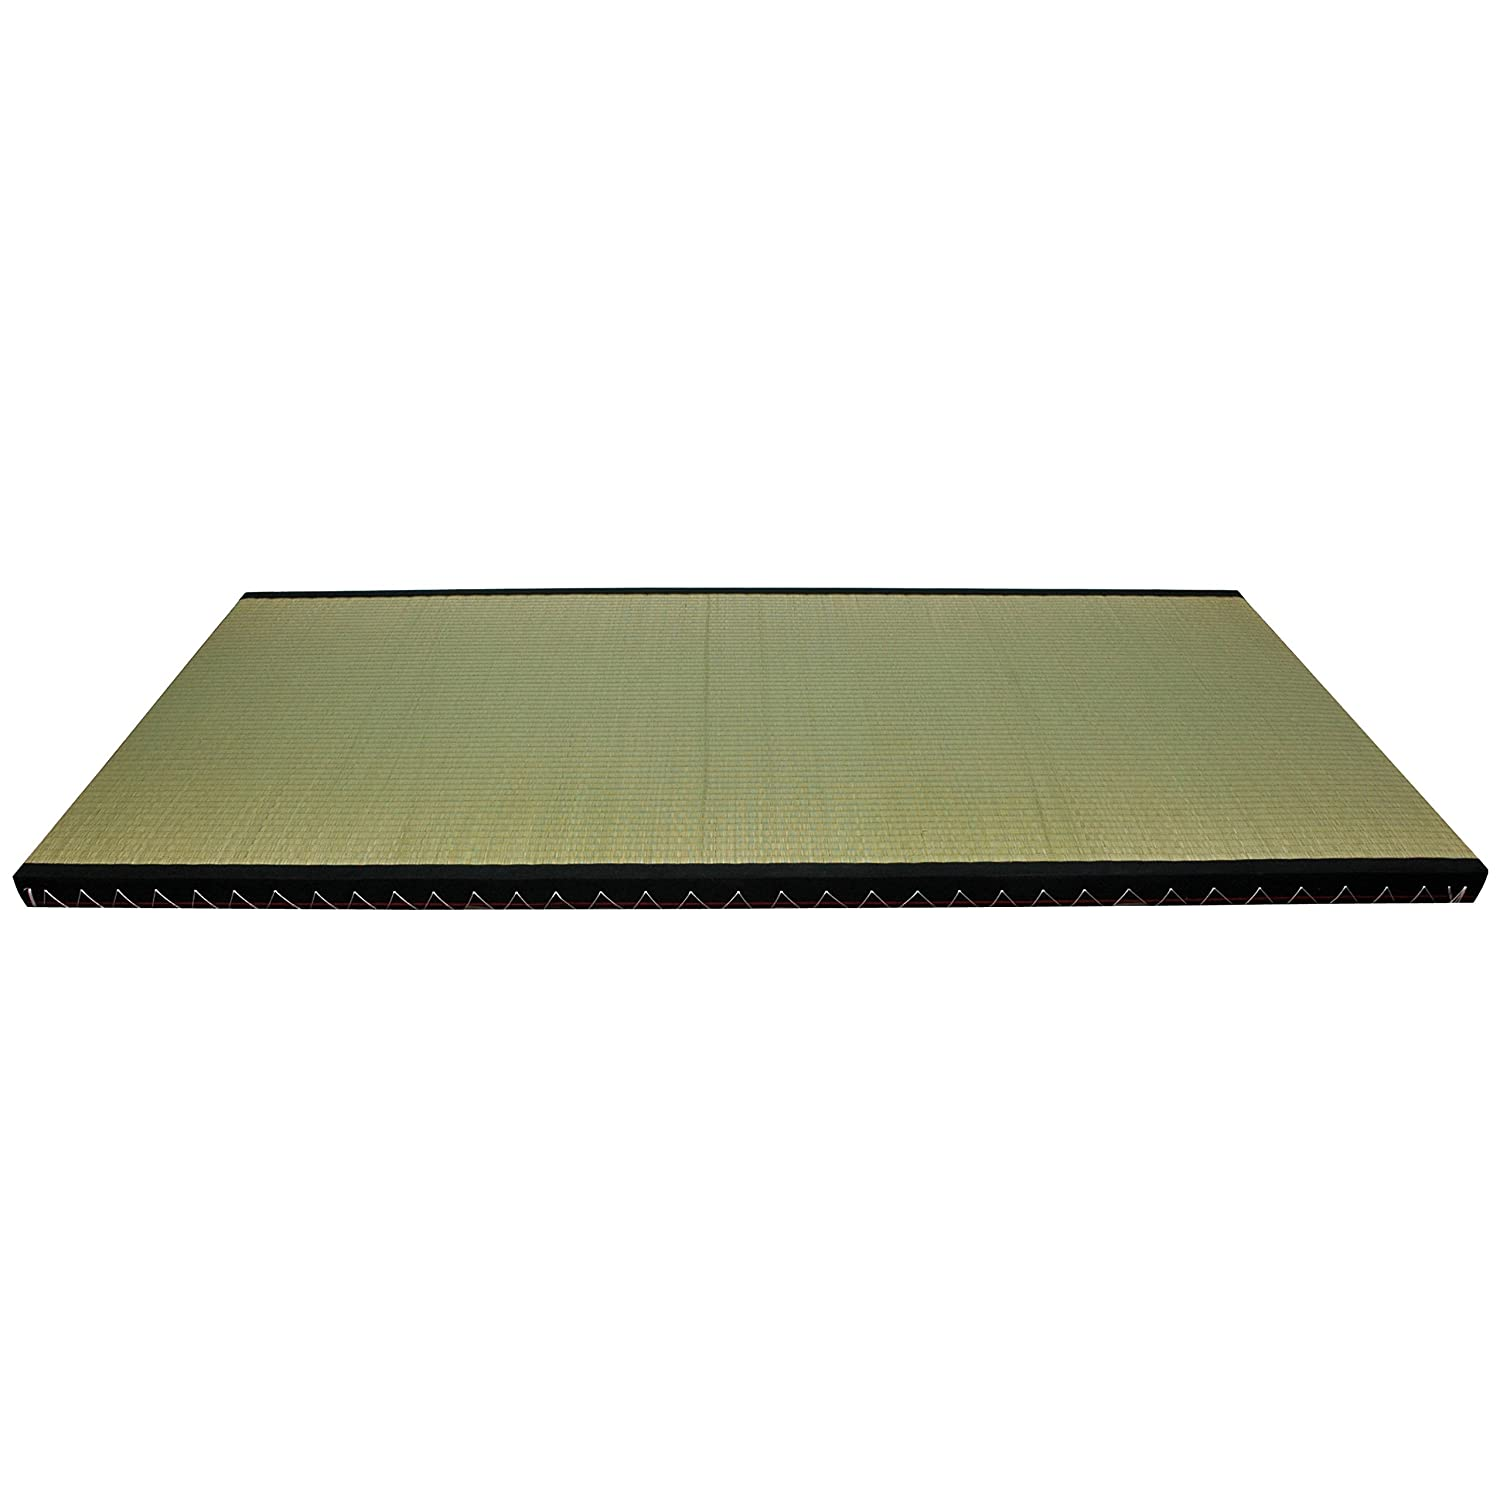 Oriental Furniture Euro Queen Tatami Mat TATAMI-EQ